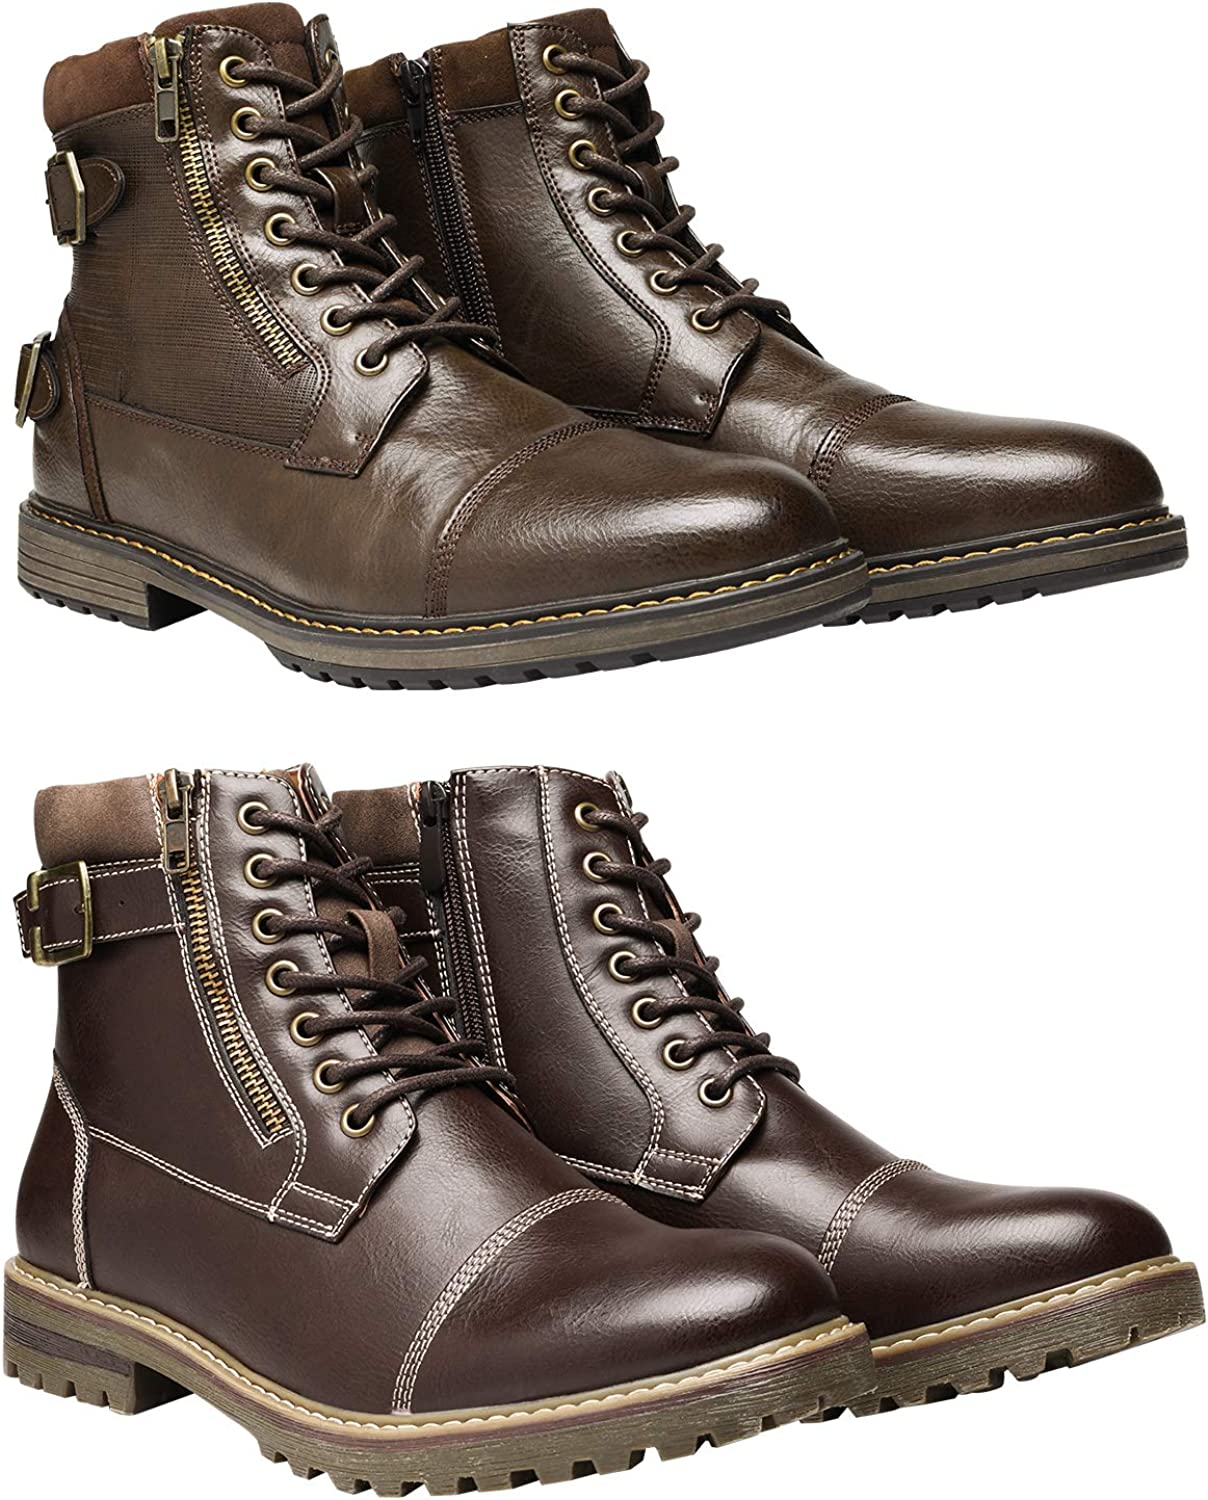 Bruno Marc Men's Motorcycle Boots Bundle with Men's Oxford Boots Size 8.5